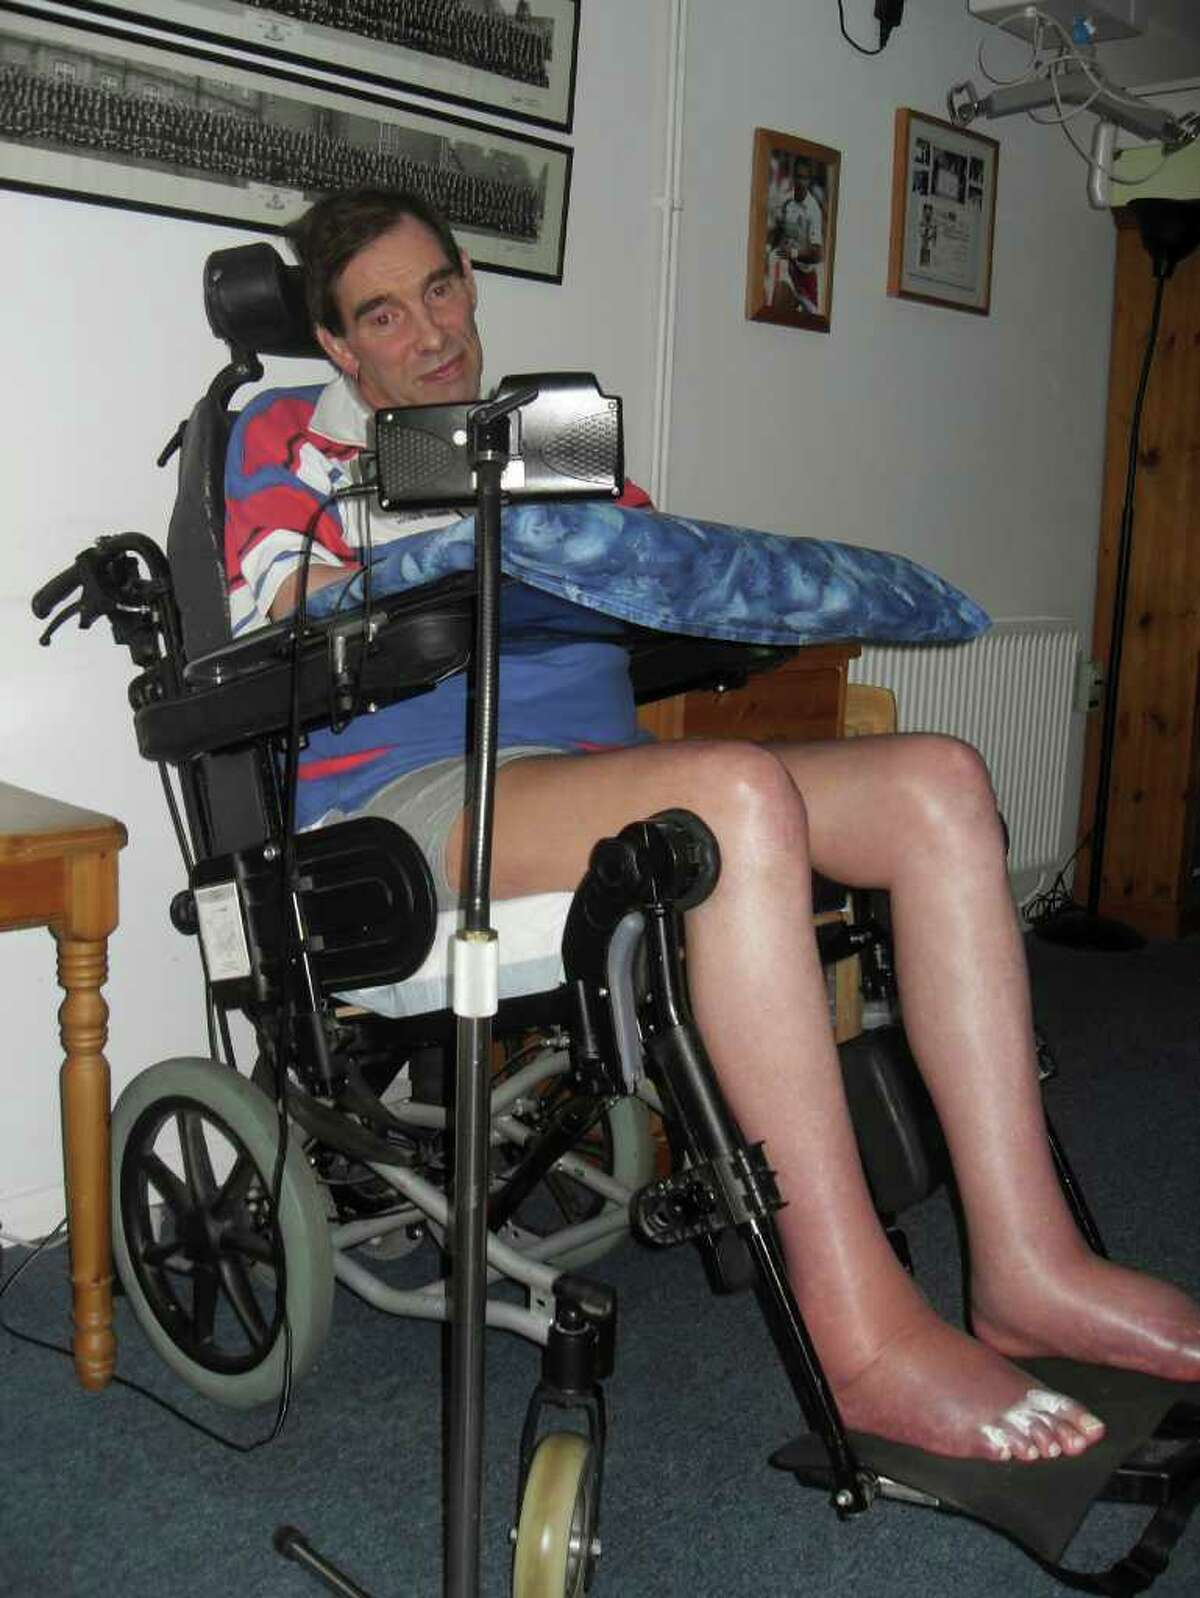 Tony Nicklinson, shown in this photo released in January, was left paralyzed by a stroke in 2005.